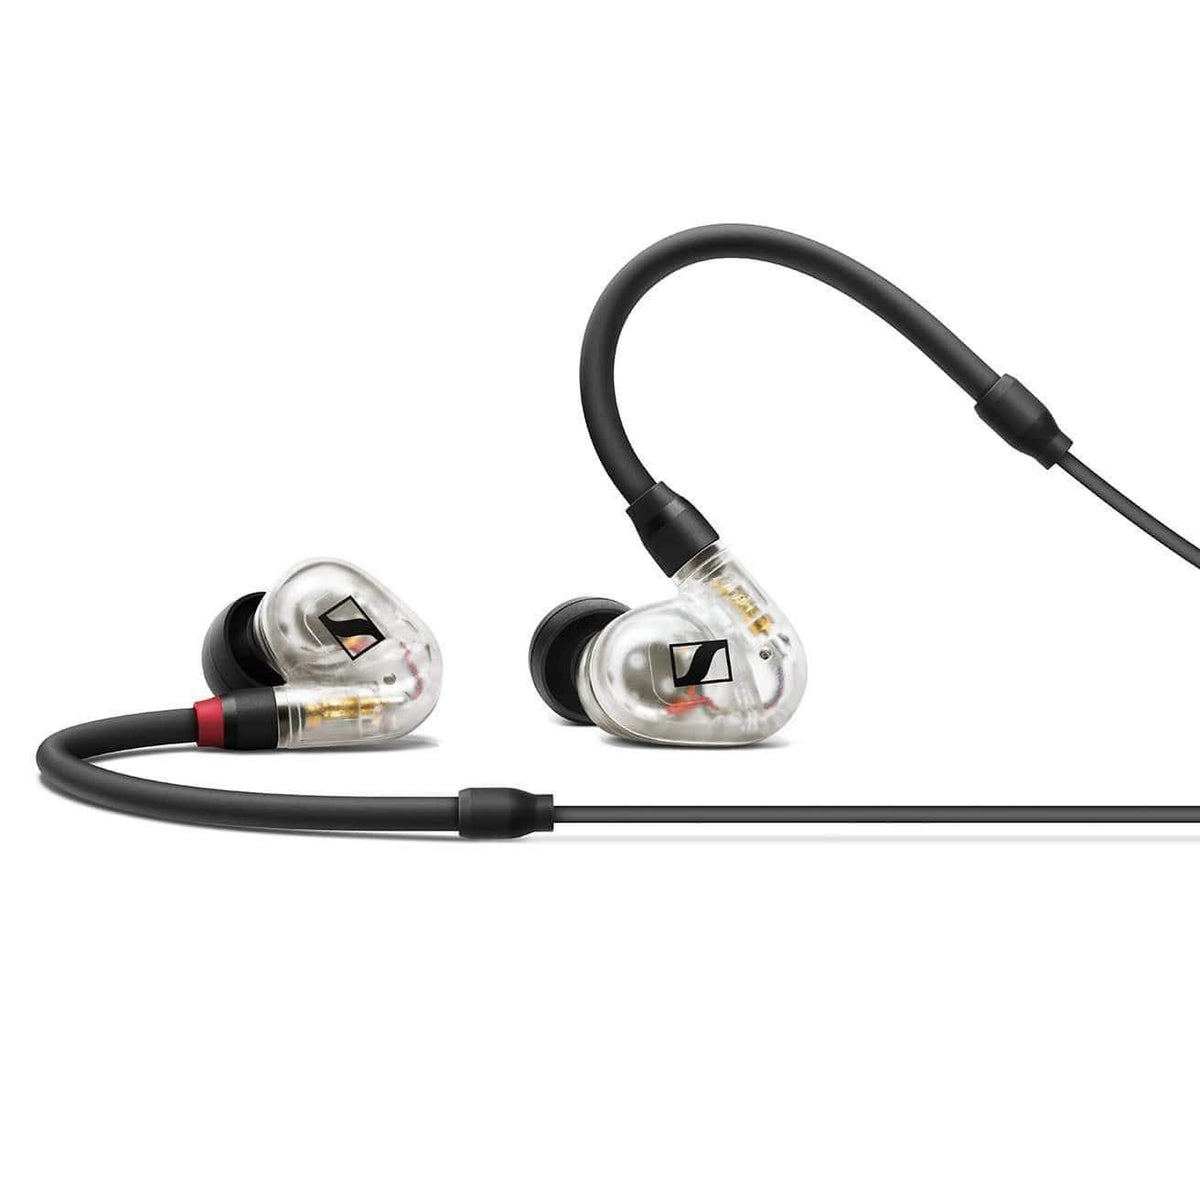 Sennheiser In-Ear Monitor Sennheiser IE 40 Earbuds for wireless monitor applications